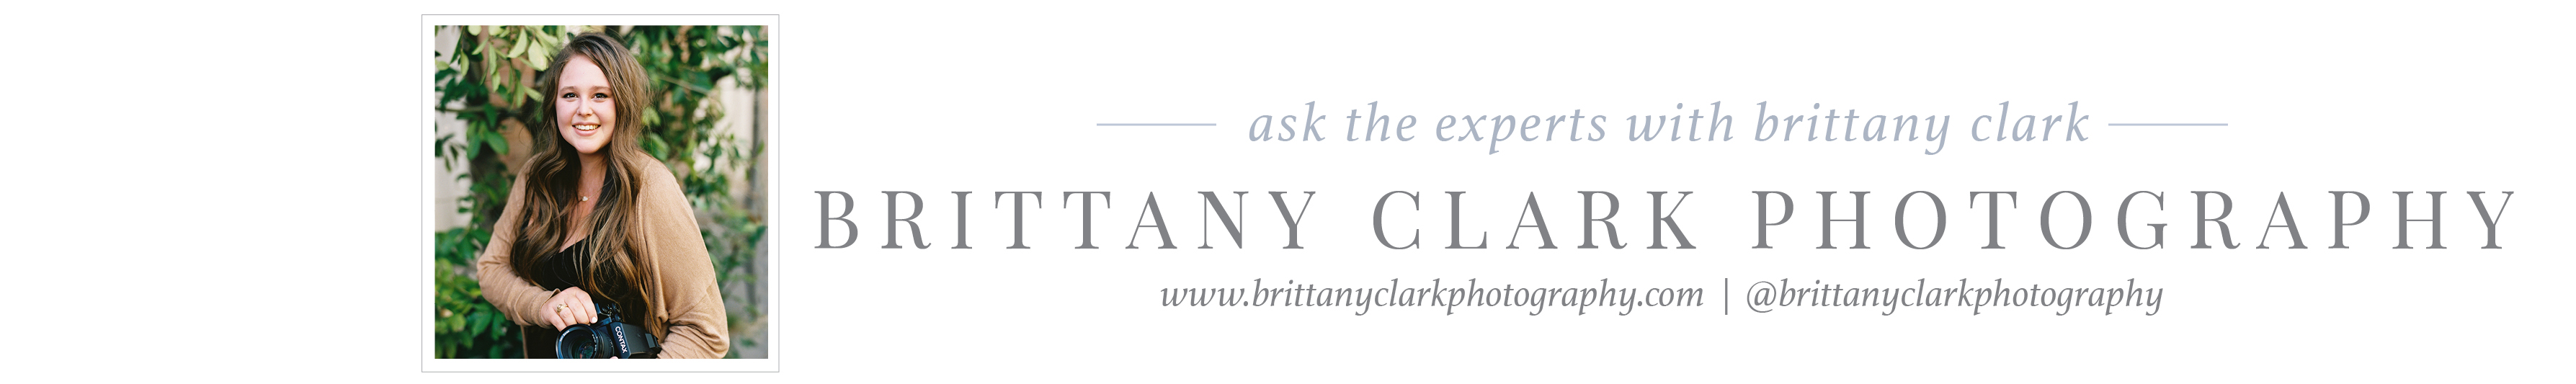 brittany clark photography